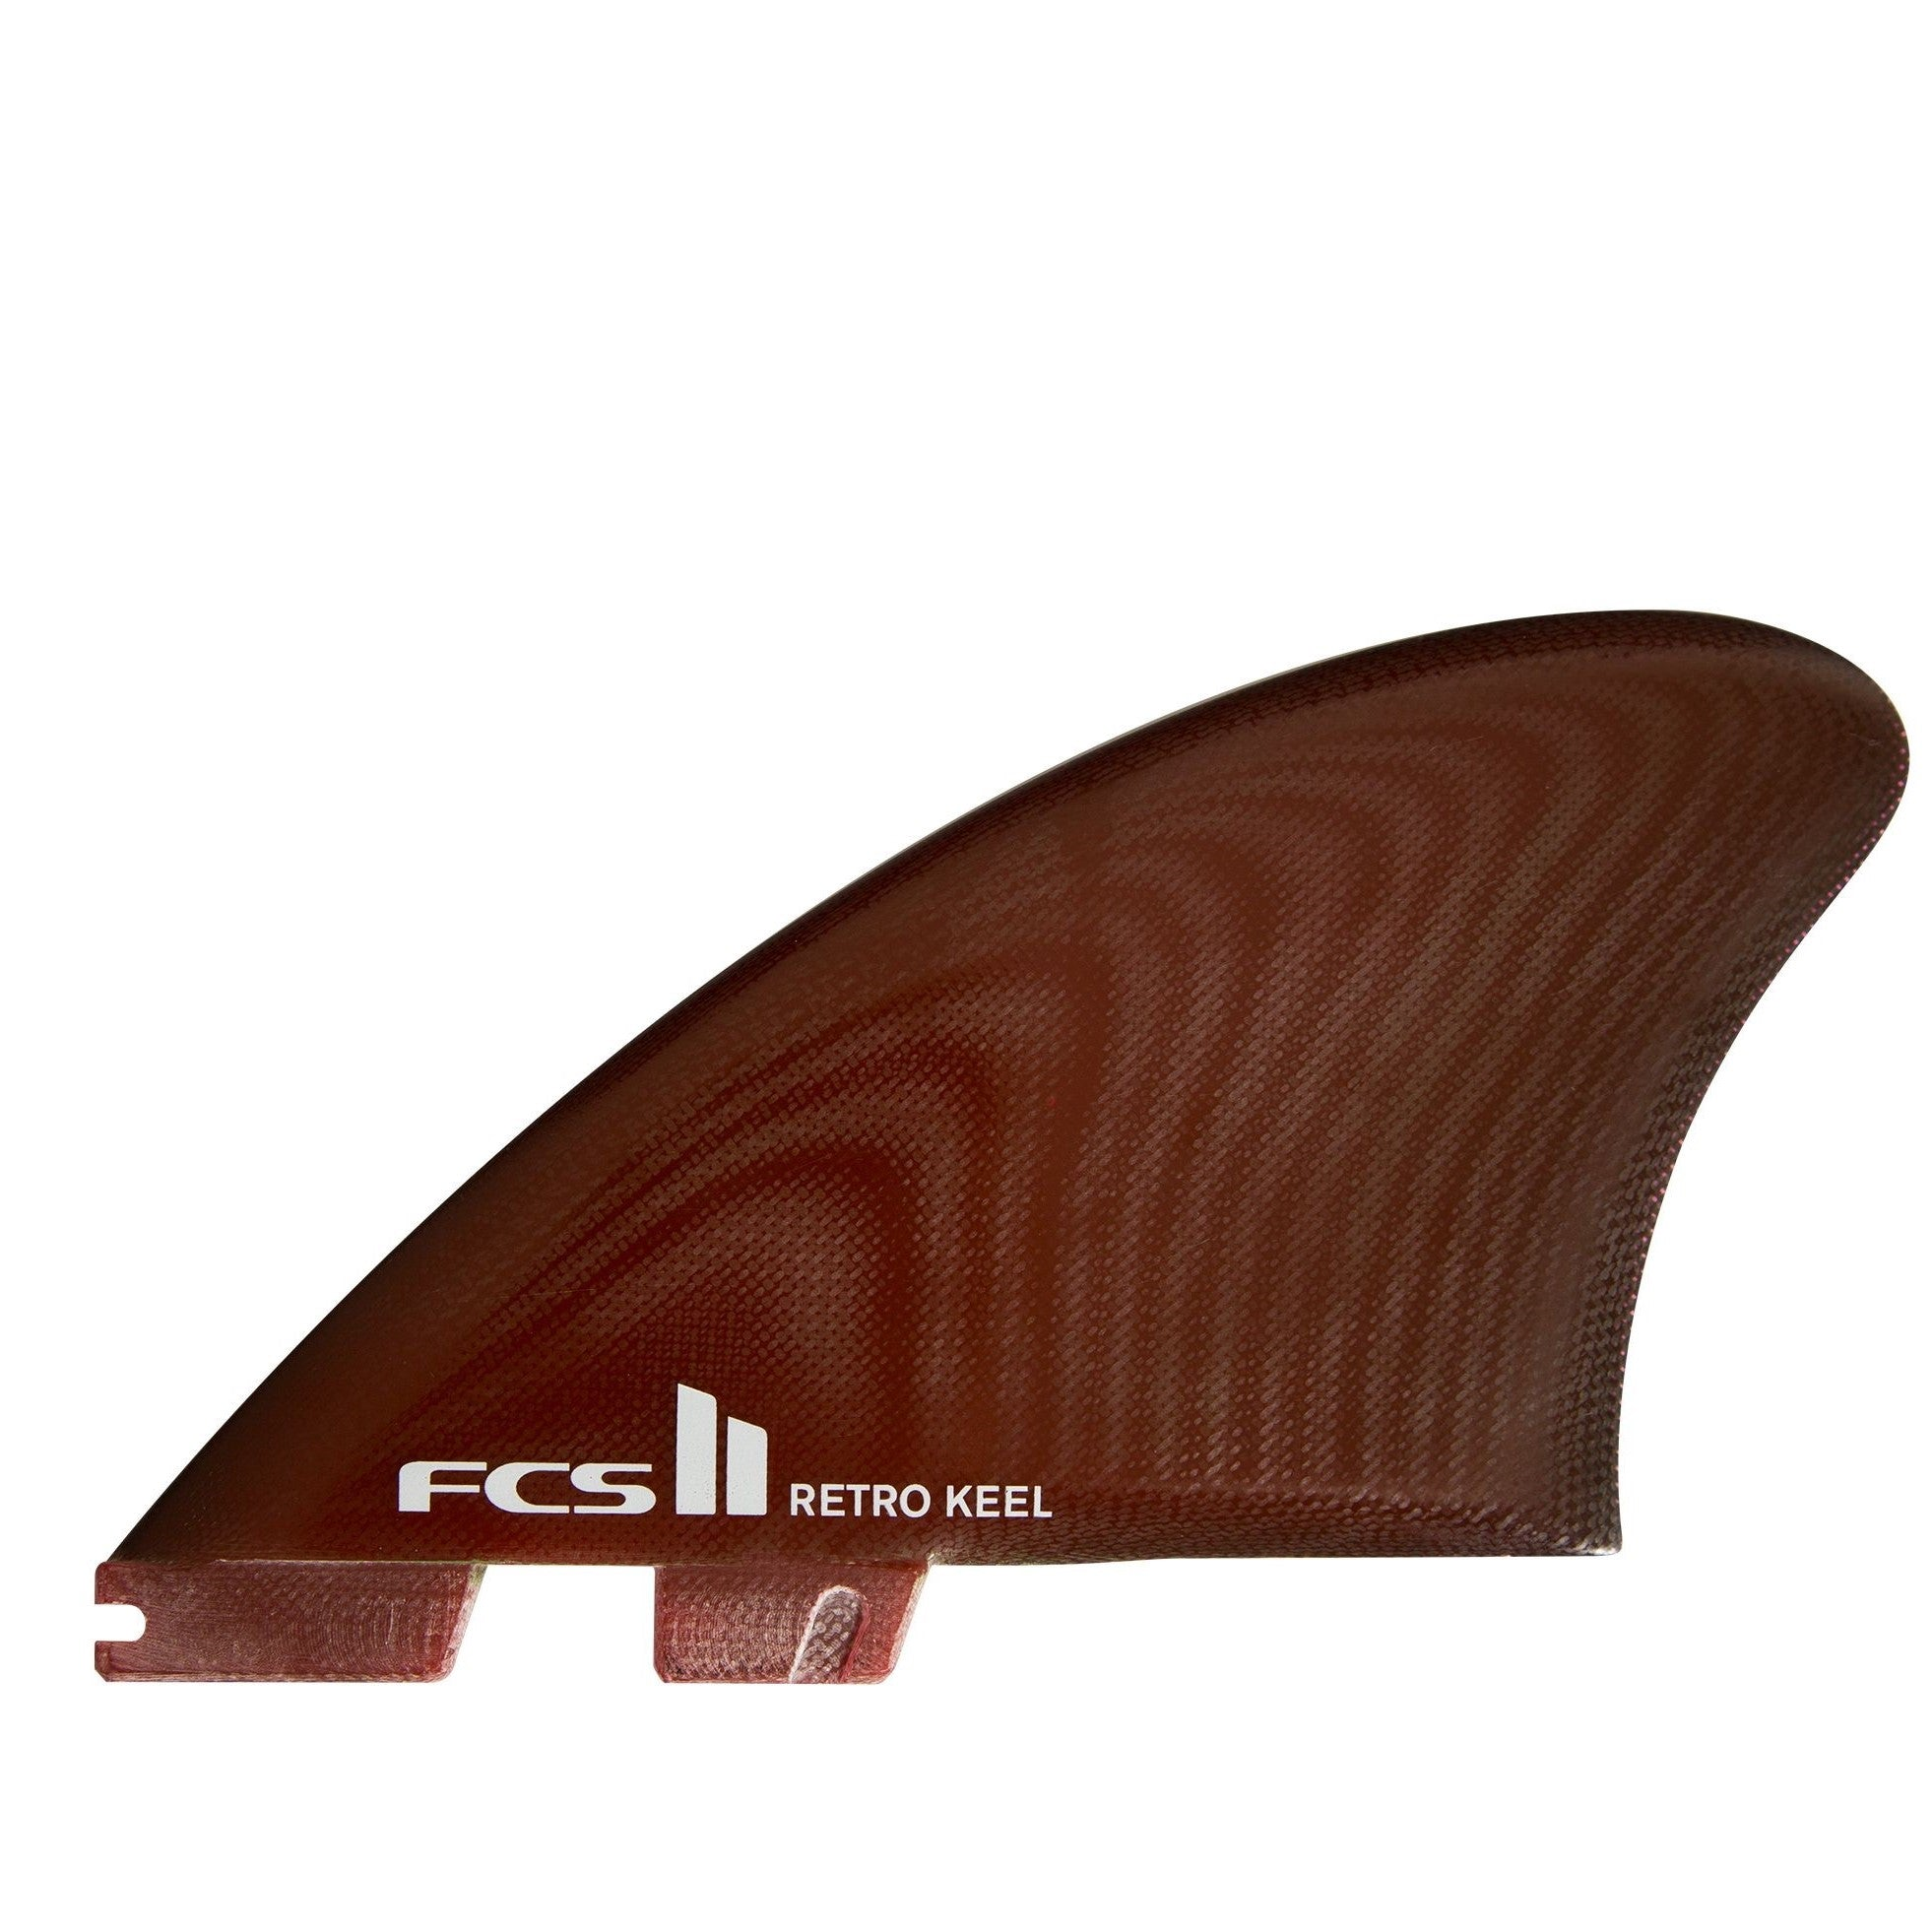 FCS2 Retro Keels for Twin Fins